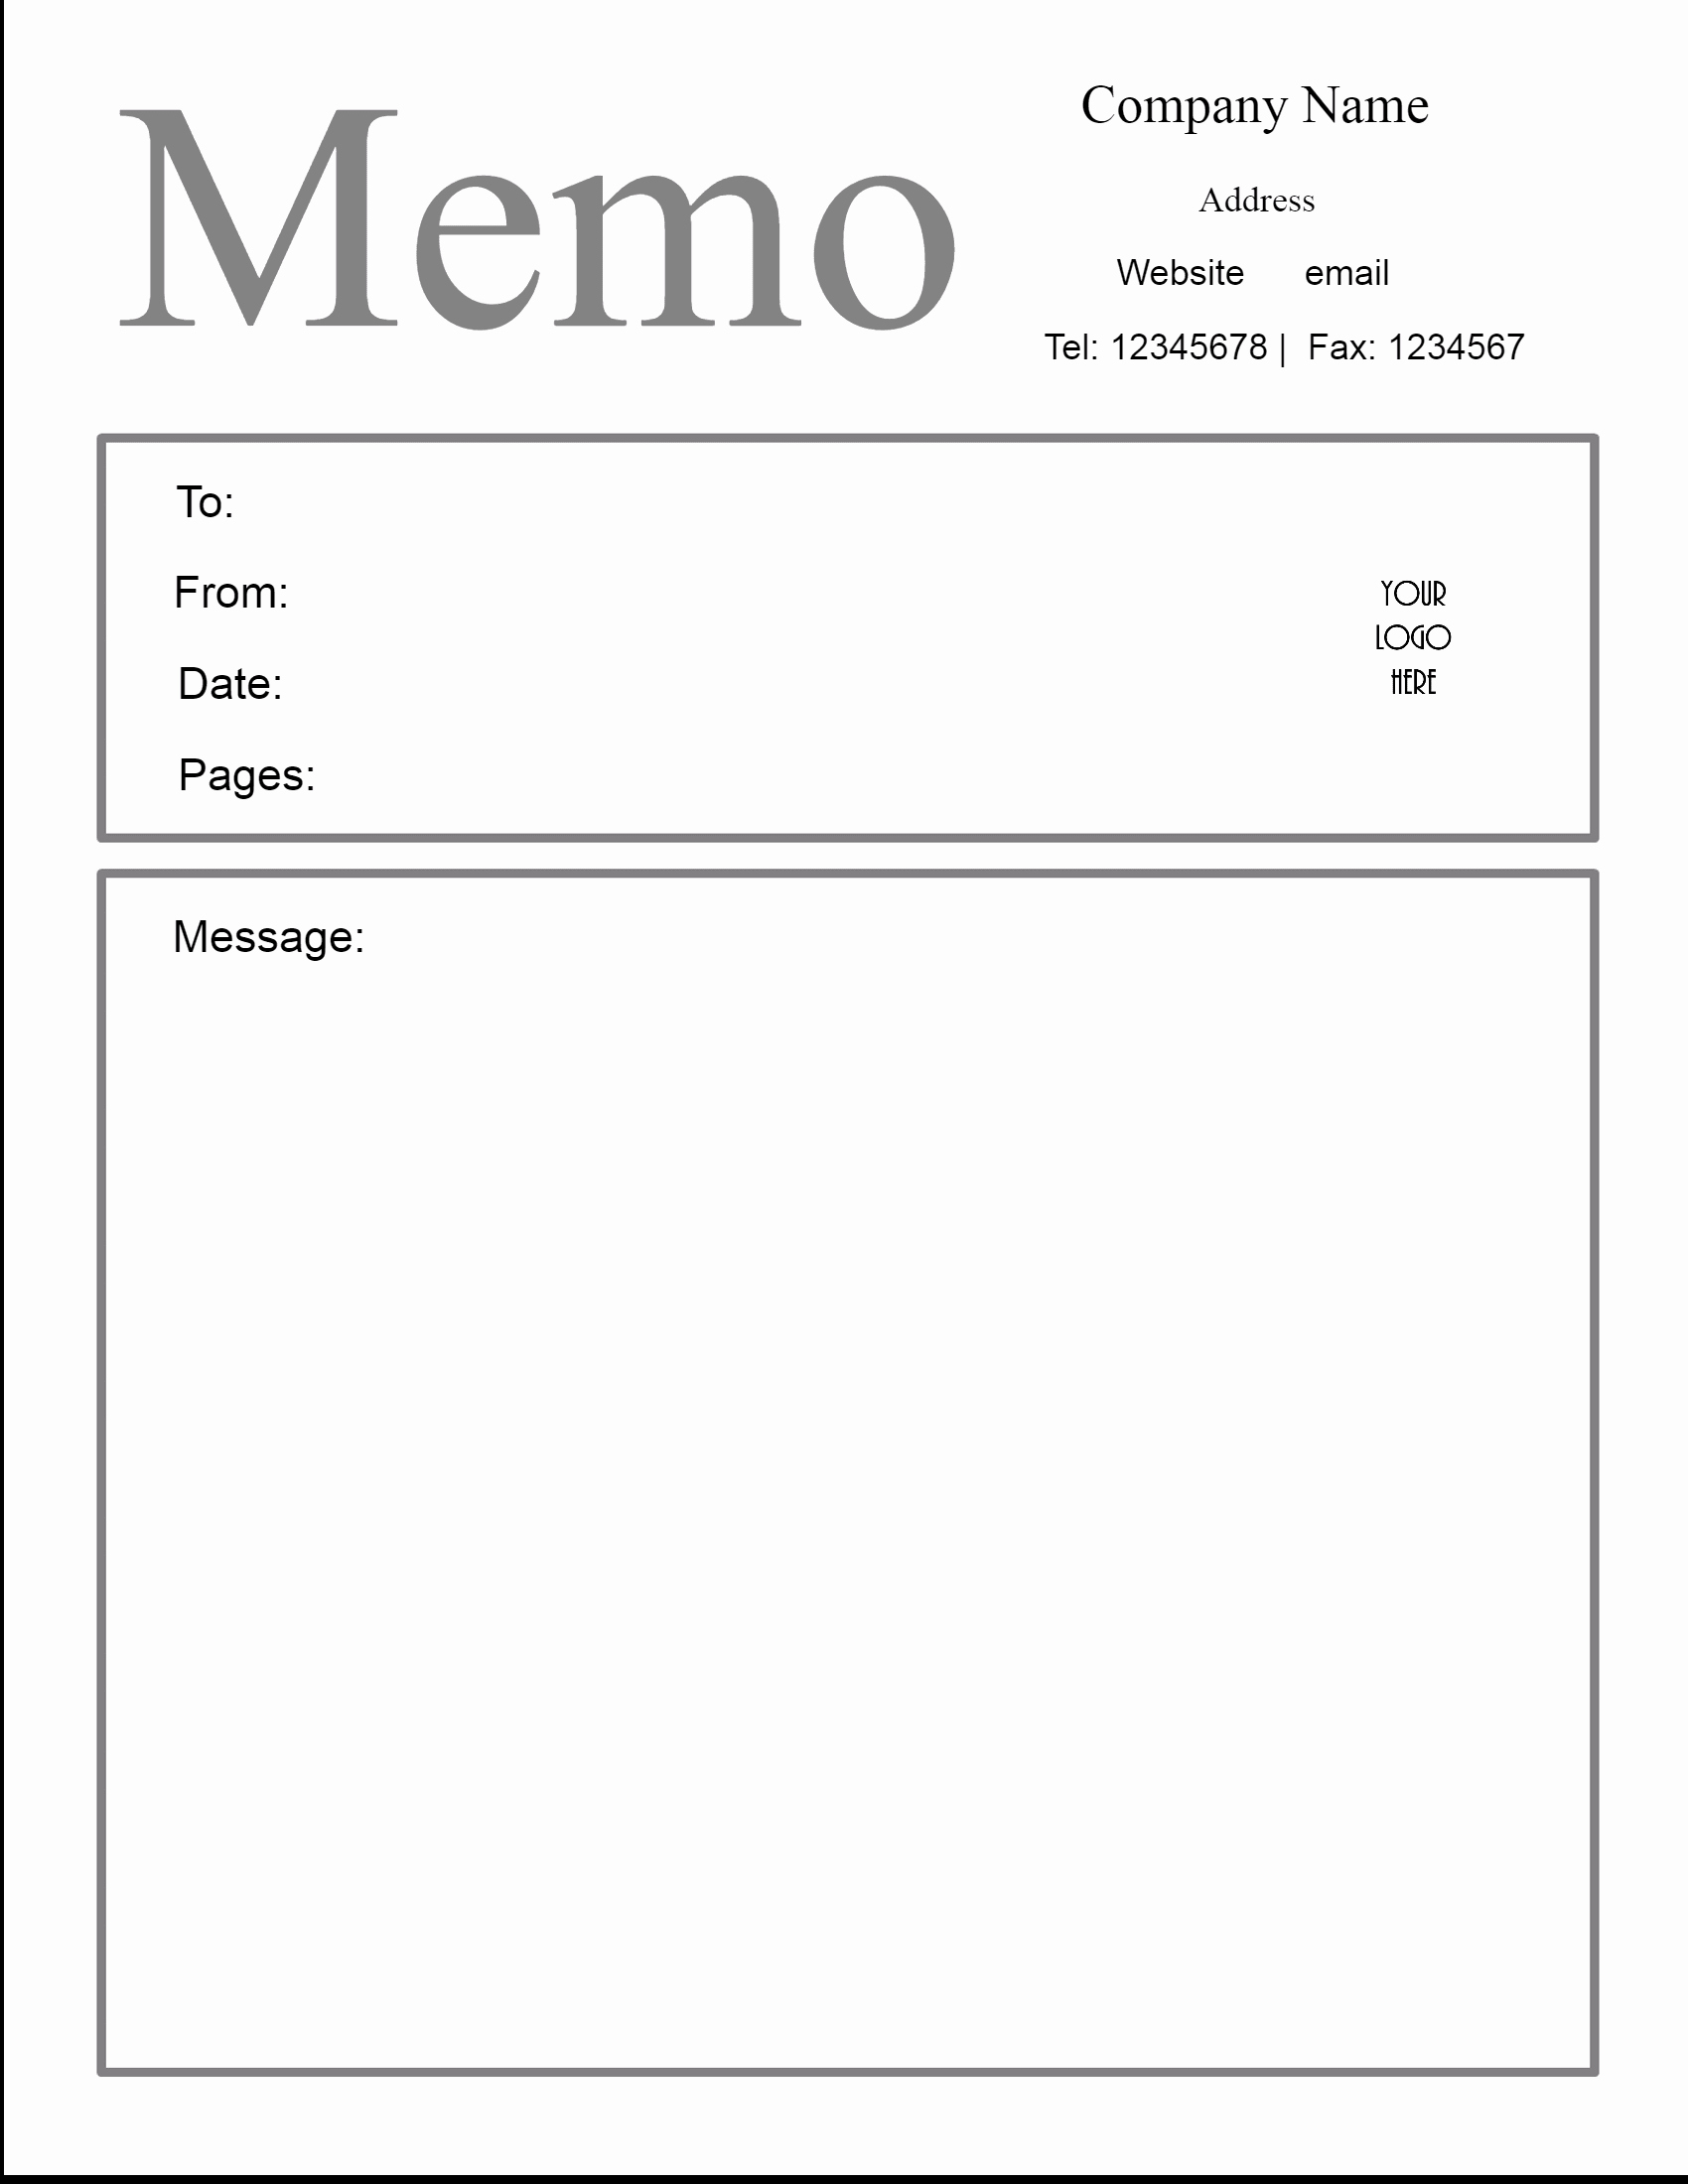 Memo Template for Word Lovely Free Microsoft Word Memo Template